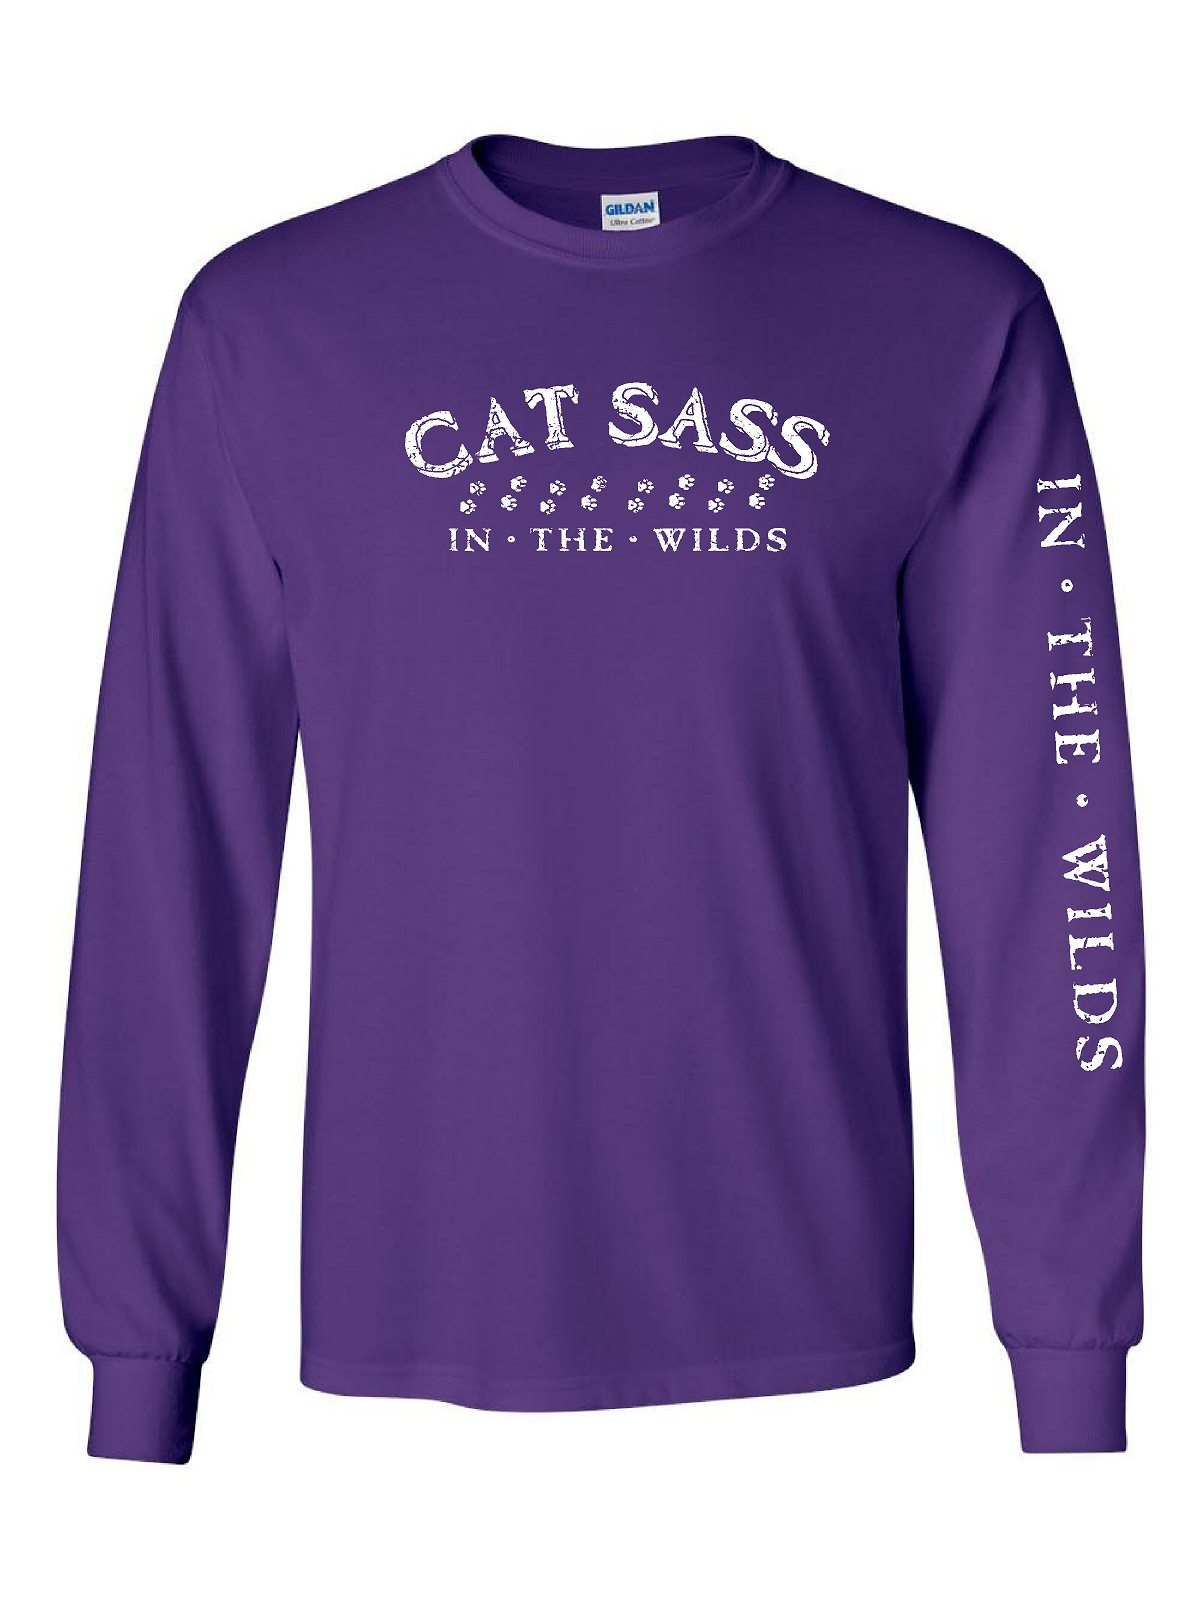 CAT SASS - IN THE WILDS LADIES PURPLE Long Sleeve Tee with sleeve print distressed look